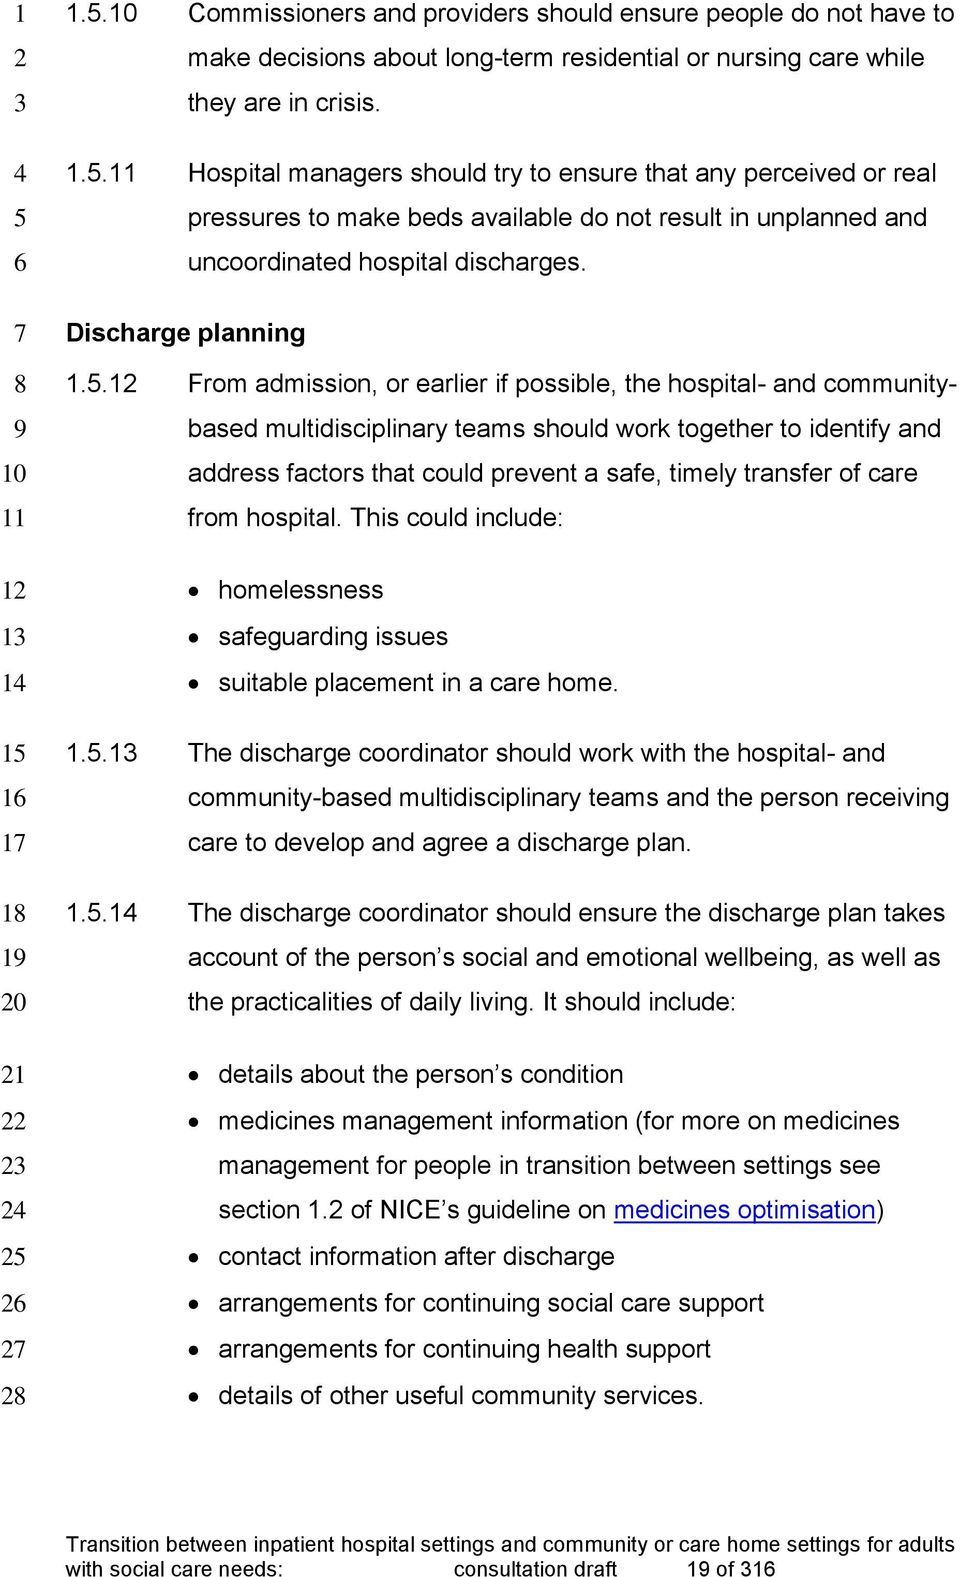 .1 From admission, or earlier if possible, the hospital- and communitybased multidisciplinary teams should work together to identify and address factors that could prevent a safe, timely transfer of